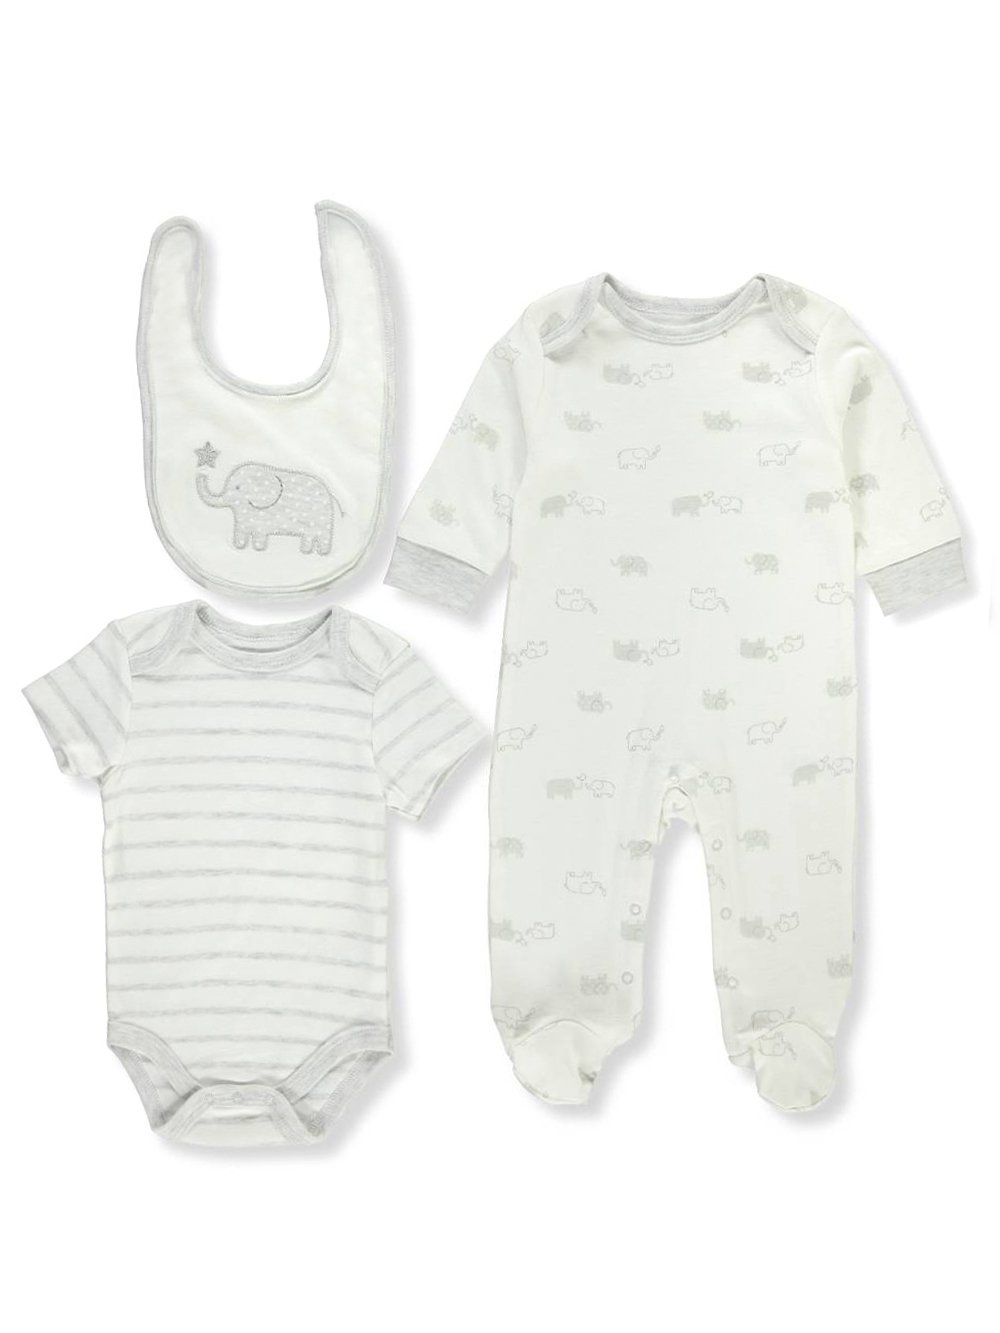 Rene Rofe Baby Boys' 3-Piece Layette Set